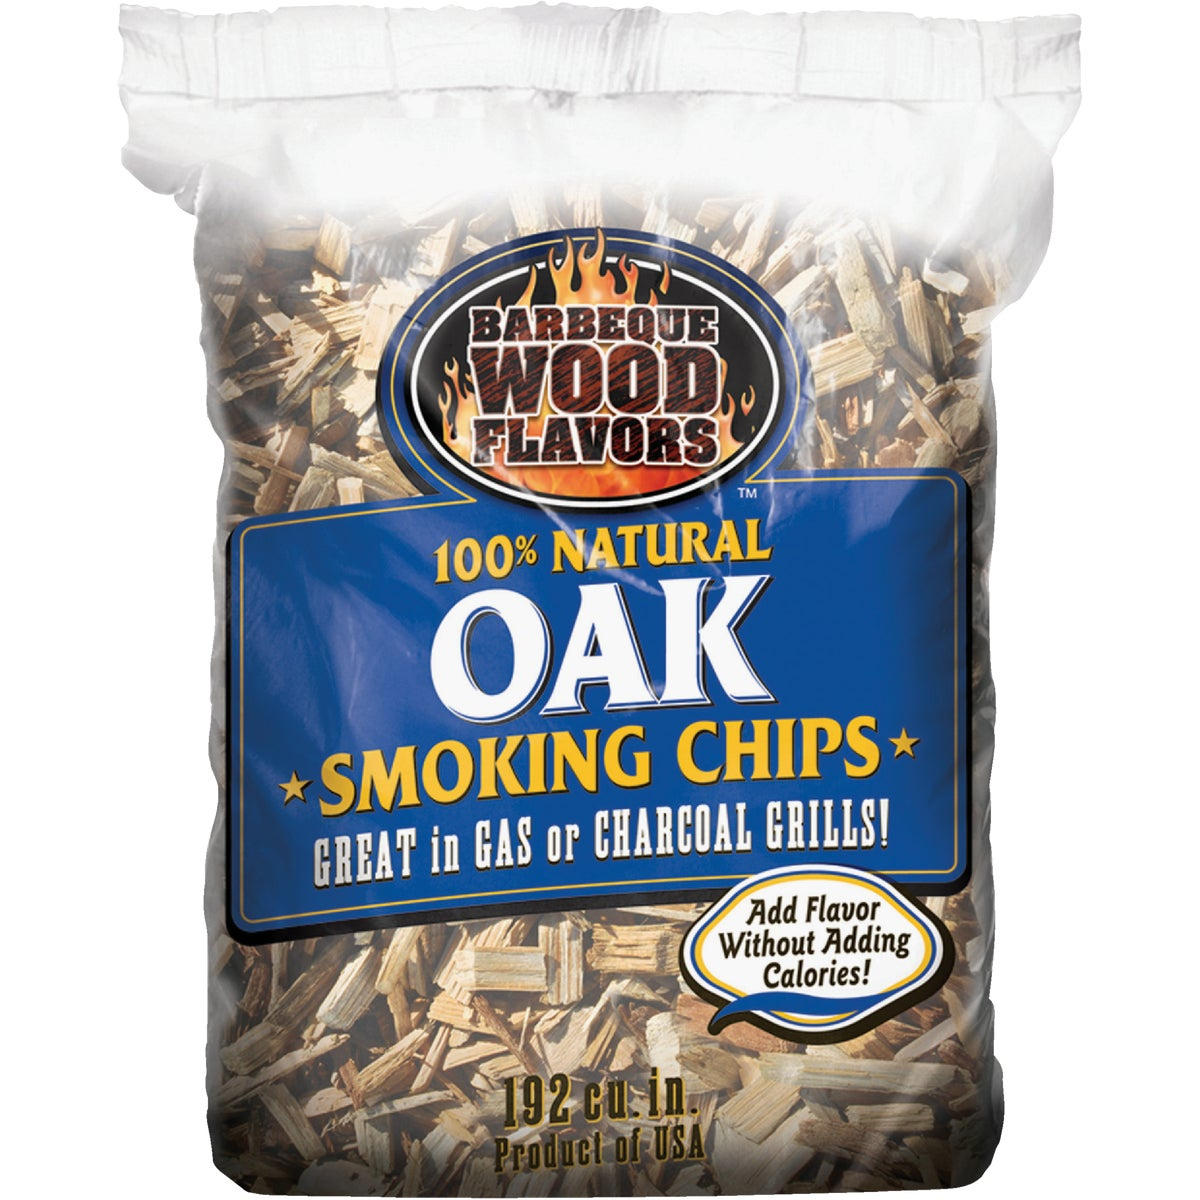 TEXAS SMOKE OAK CHIPS - 60007 by Barbeque Wood Flavor